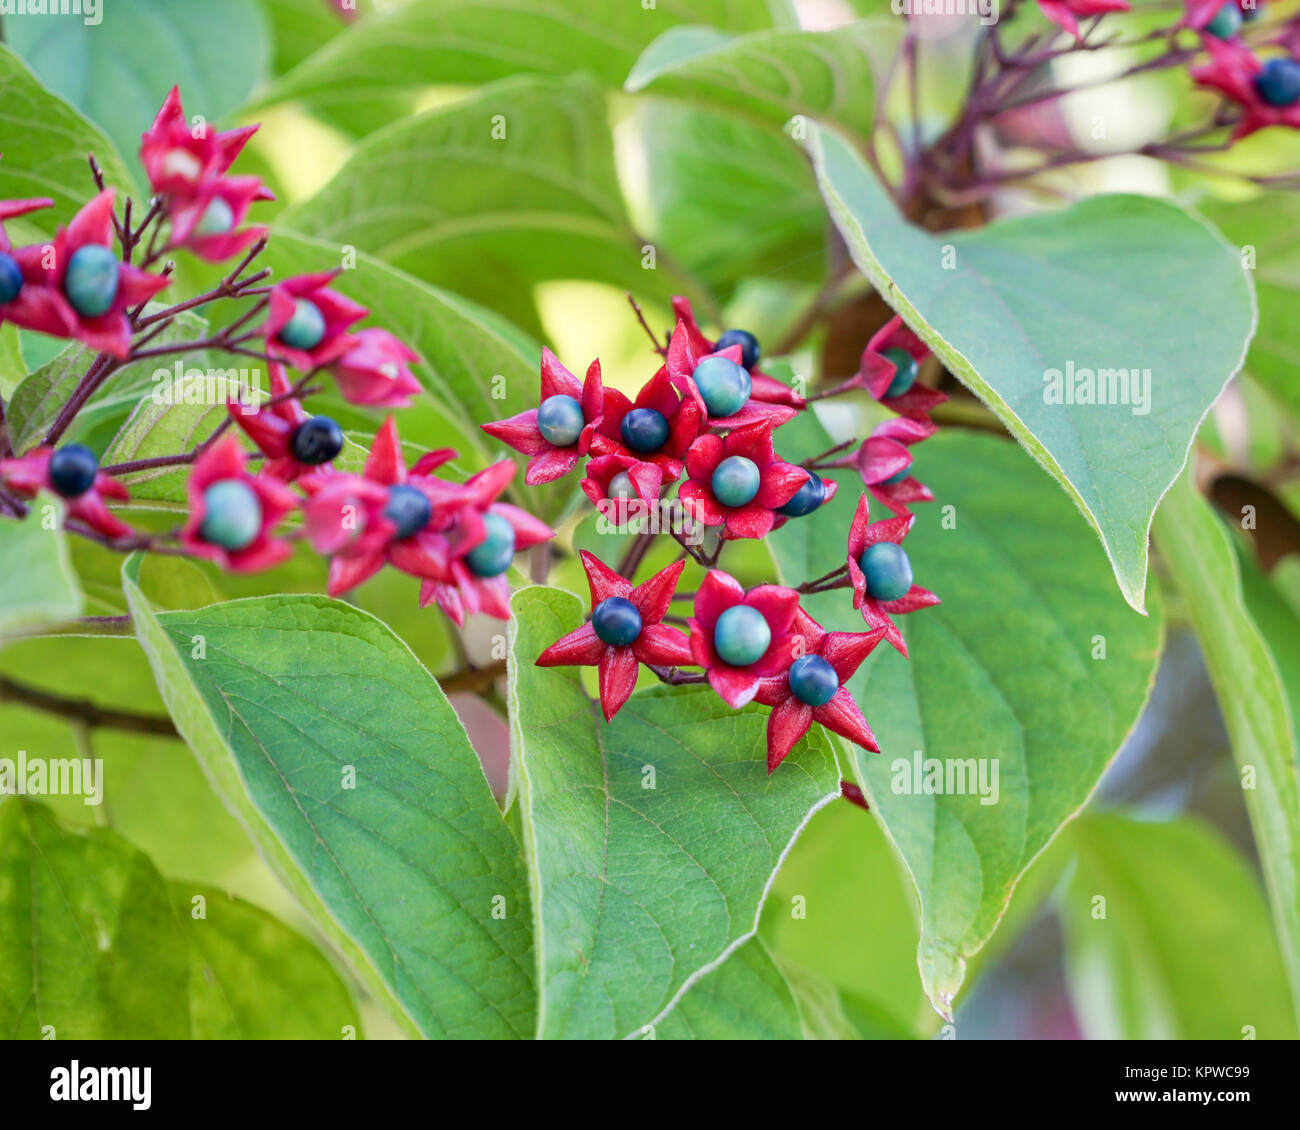 Clerodendrum trichotomum seed pods and leaves closeup, showing the distinctive bright red calyxes. - Stock Image